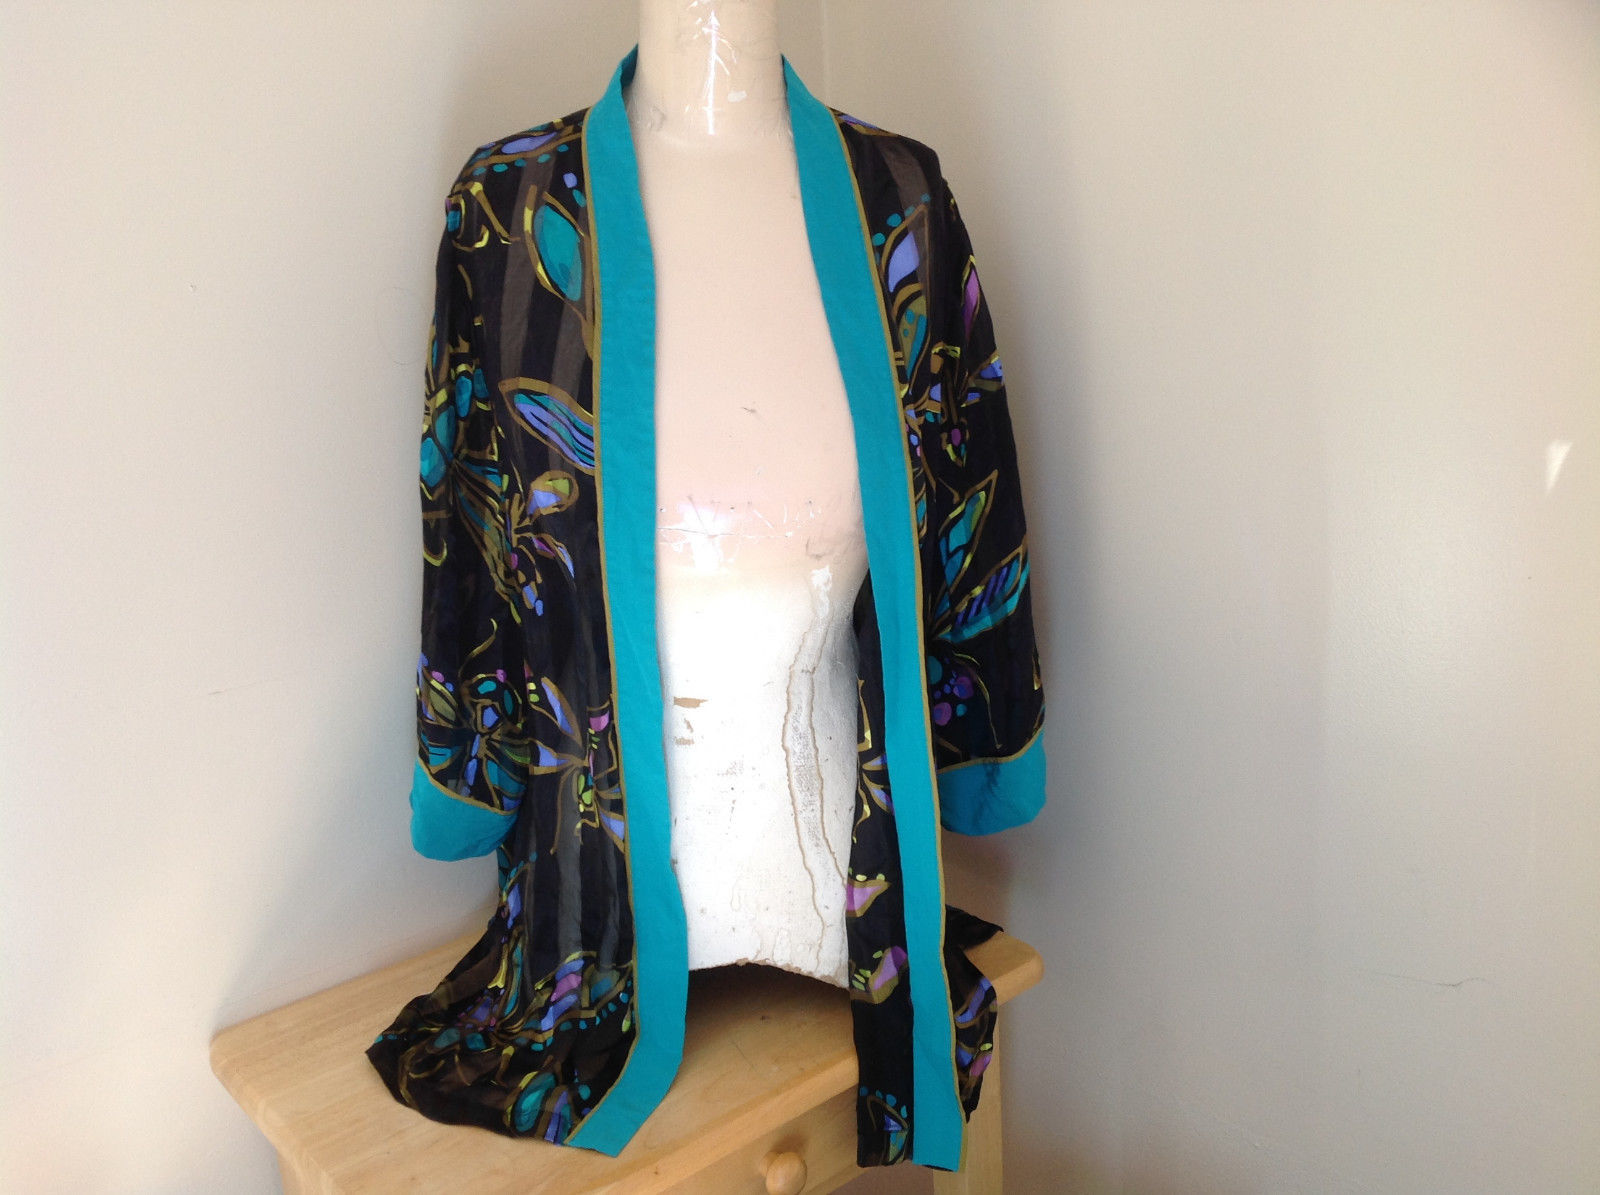 Black Teal Green Dragonfly Design Kimono Made in China 100 Percent Silk Size M